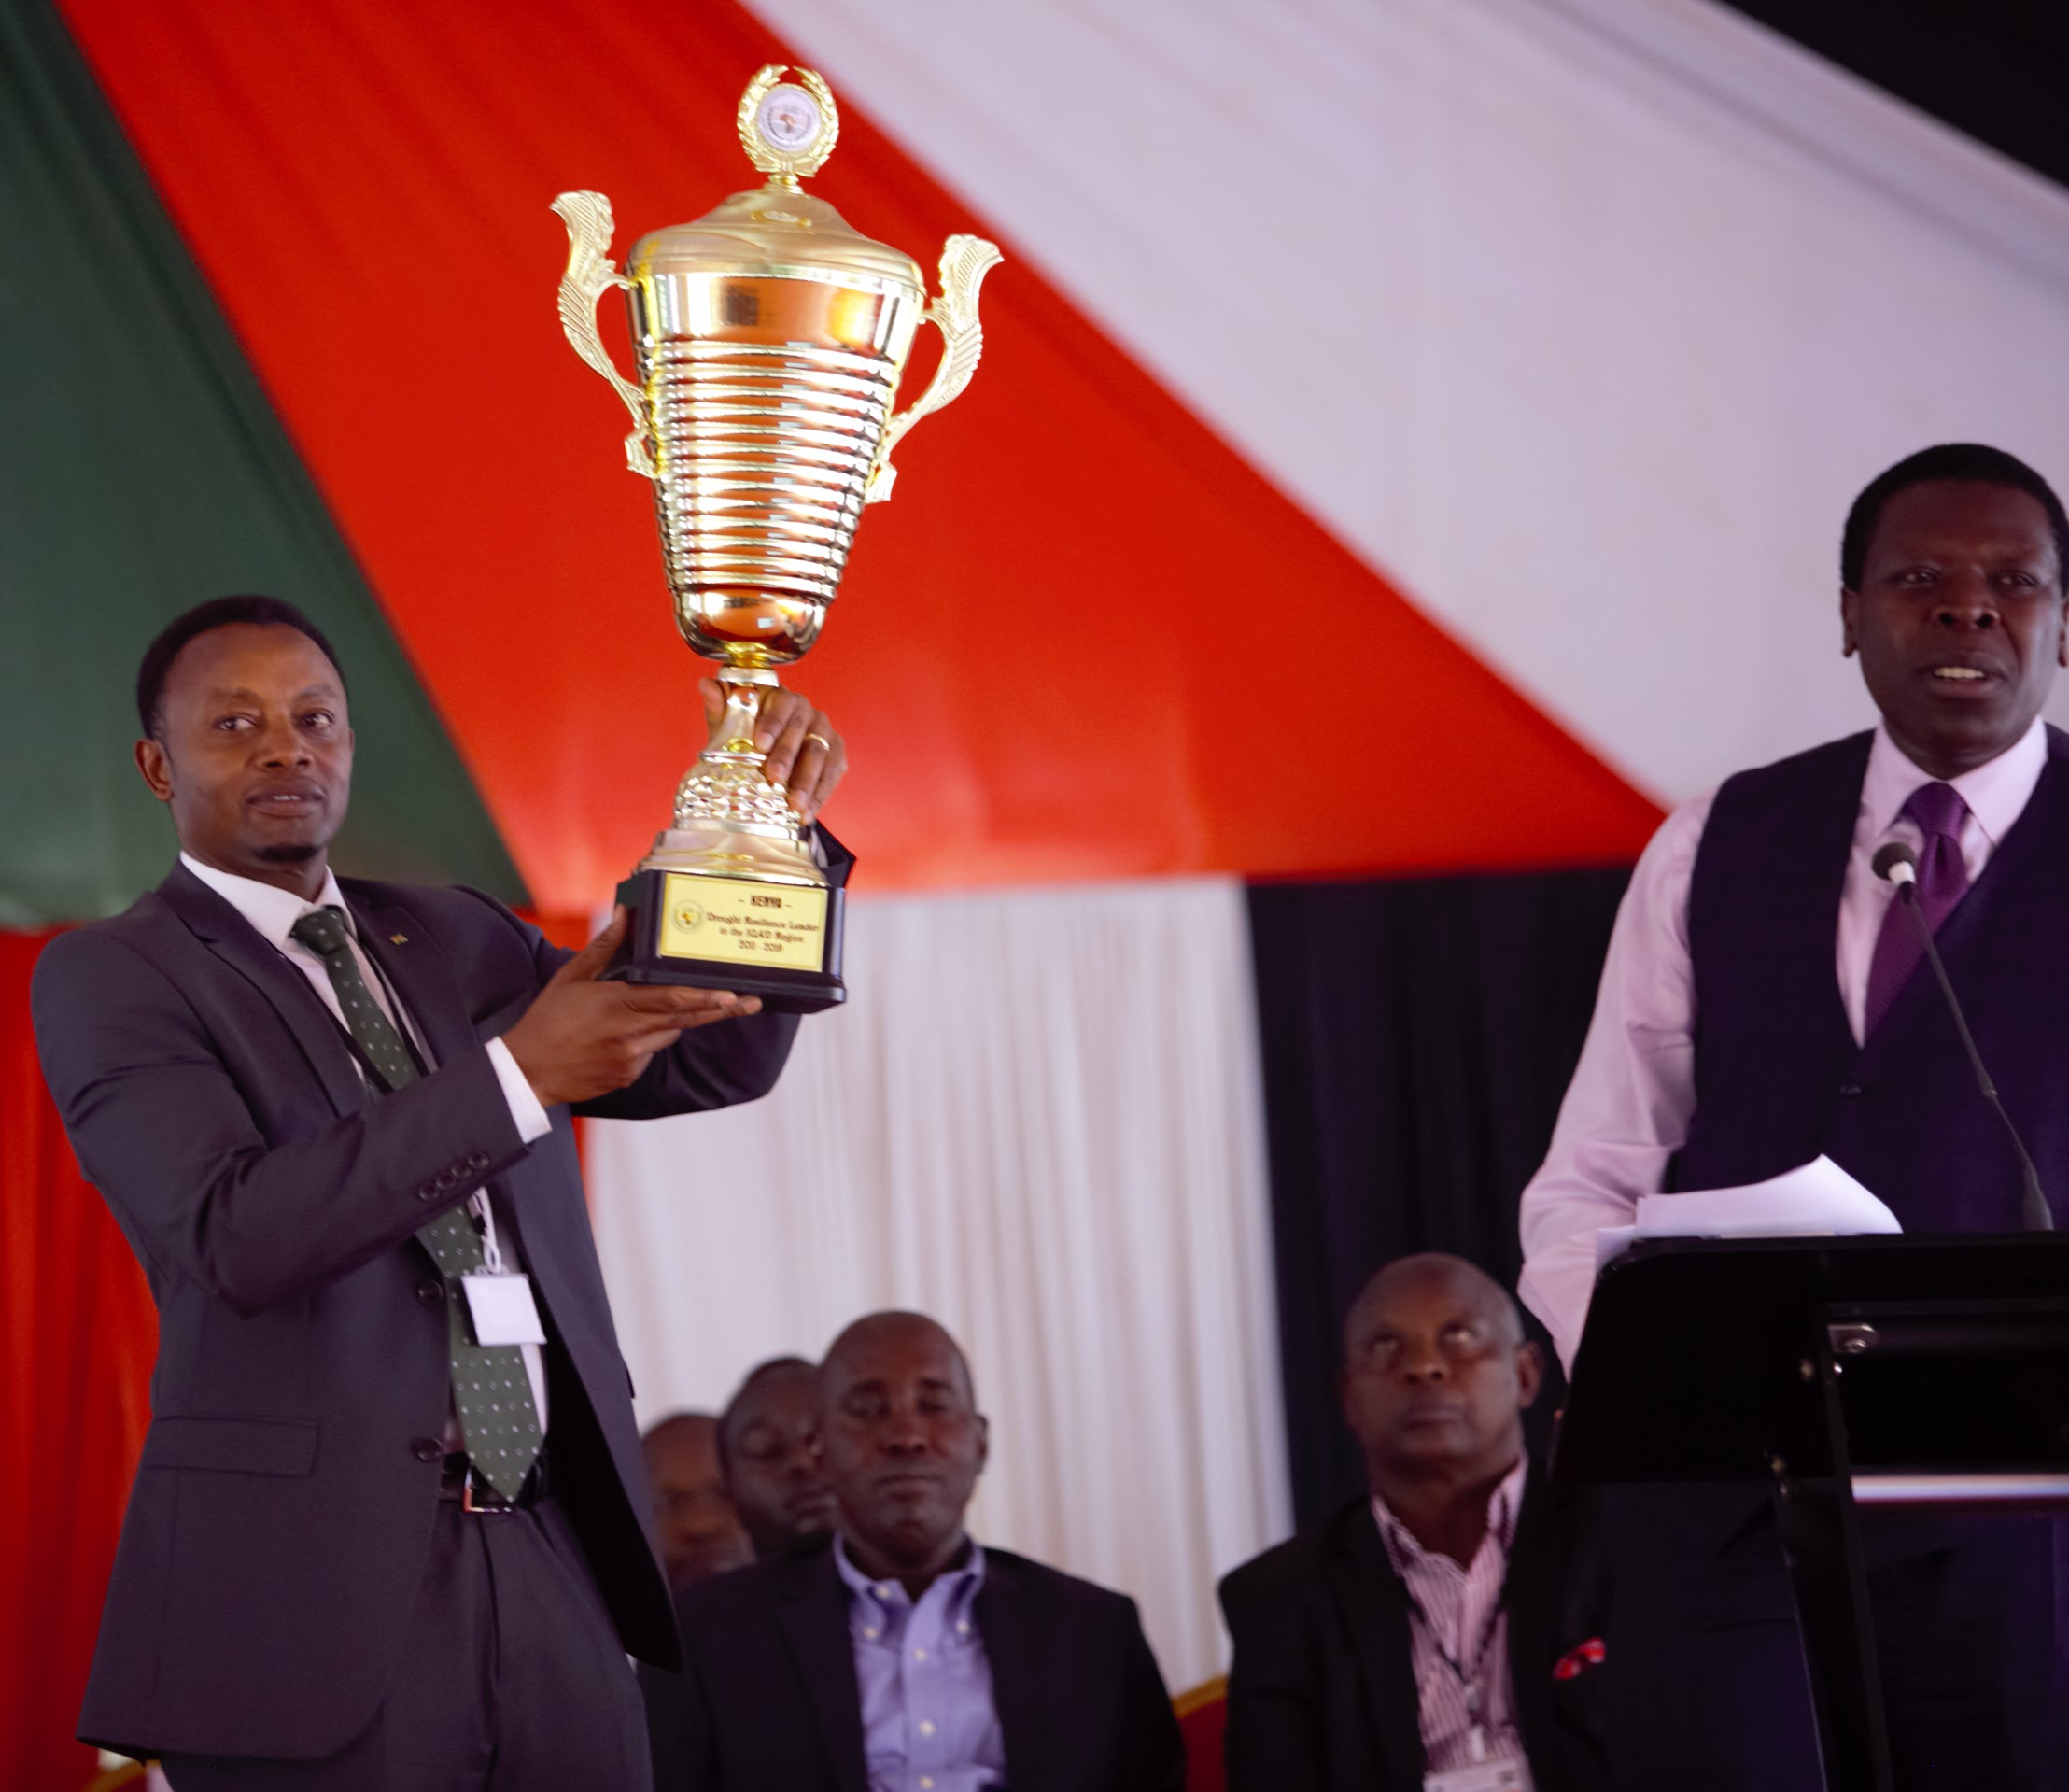 NDMA Board Chairman Mr Raphael Nzomo shows off the IGAD Resilience Champion Award presented to him by Devolution and ASALs Cabinet Secretary Hon. Eugene Wamalwa during the opening of the 2nd ASALs Conference in Kajiado County on September 10, 2019. The award recognises Kenya as a resilience building champion in the region, especially for institutionalising drought management through establishment of the NDMA. The NDMA coordinates the Ending Drought Emergencies strategy on behalf of the Government.